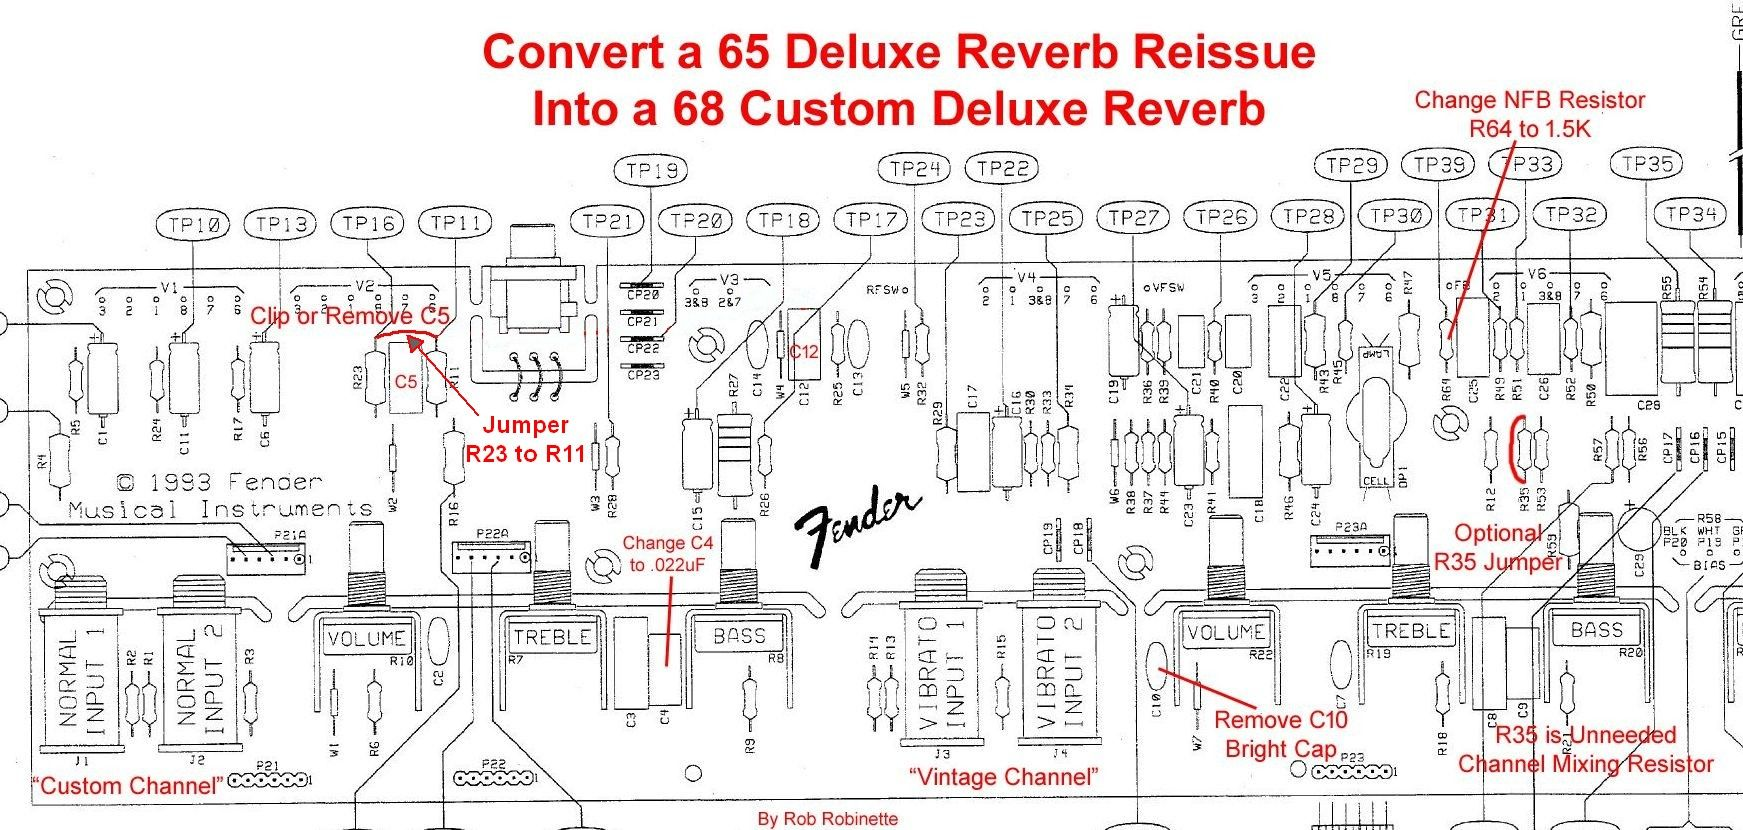 [DIAGRAM_38ZD]  XB_2034] 1957 Deluxe Fender Amplifier Schematic Diagram Download Diagram | Pontiac Reverb Wiring Diagram |  | Perm Bapap Sand Sapebe Mohammedshrine Librar Wiring 101